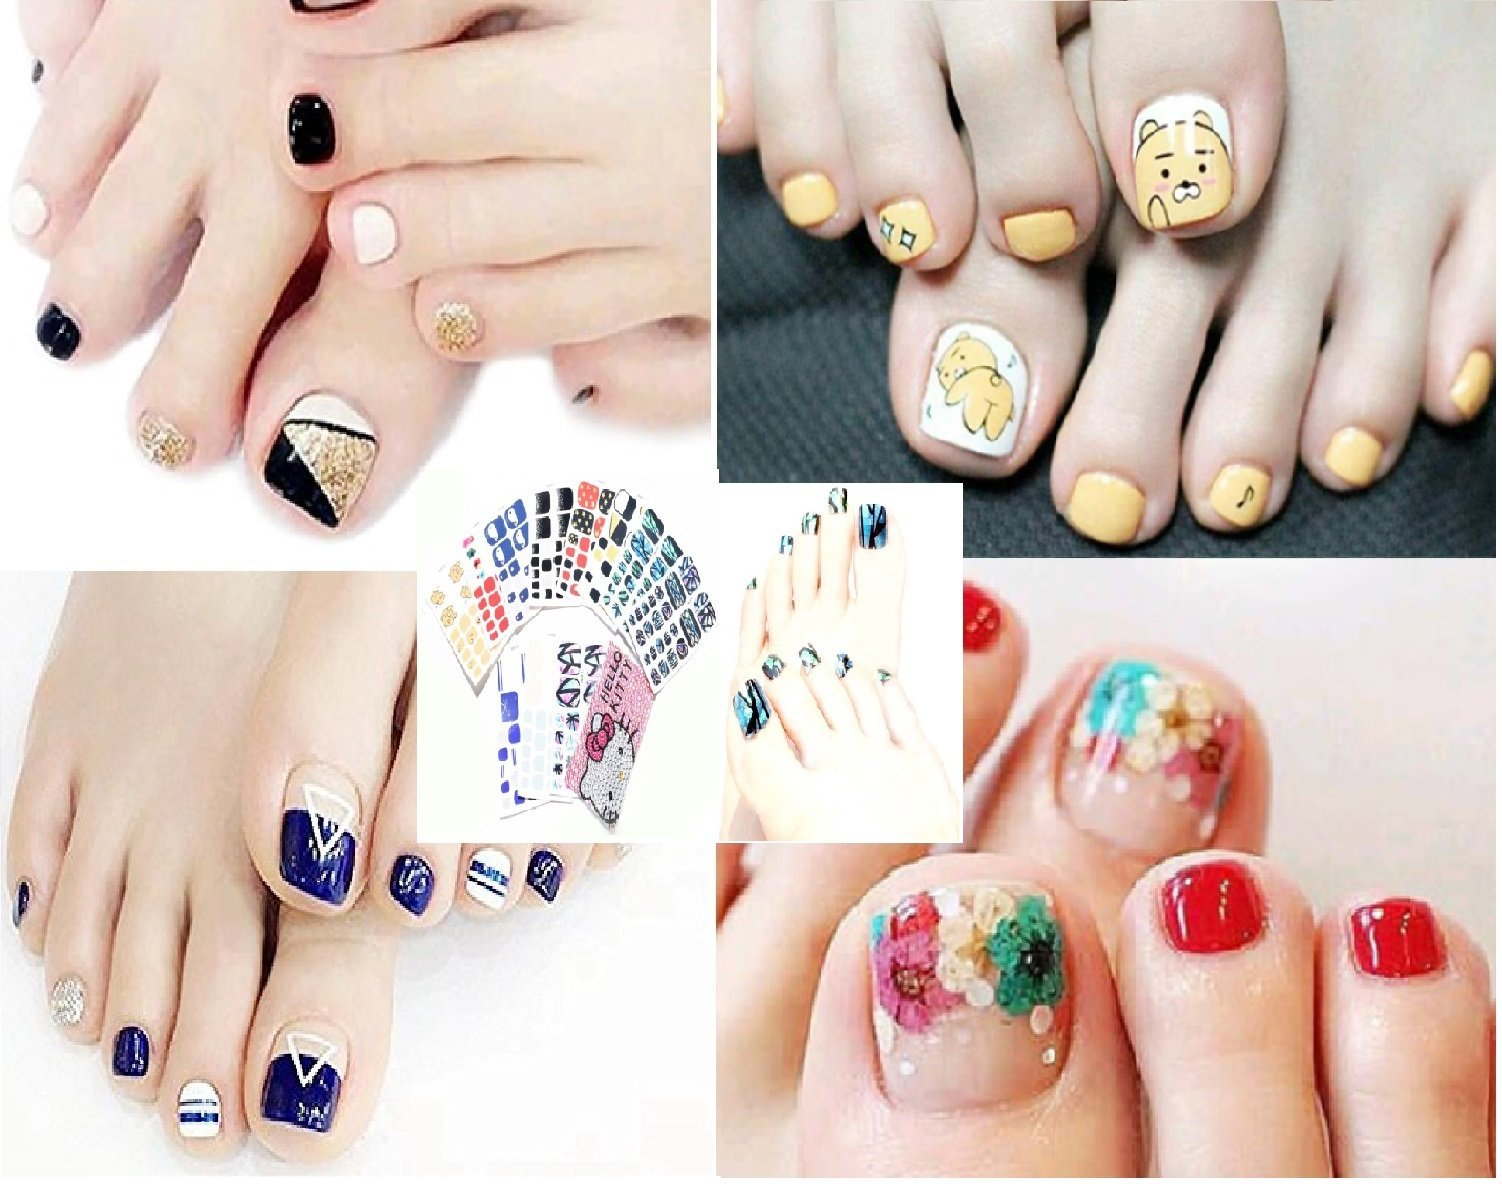 Bavs 11 DIFFERENT SHEET toes nail stickers Decal Beauty for Women Girls Kids Decals Manicure polish 3d art Glass slice toe nail sticker/Bling Bling Cubic 1 (Random)